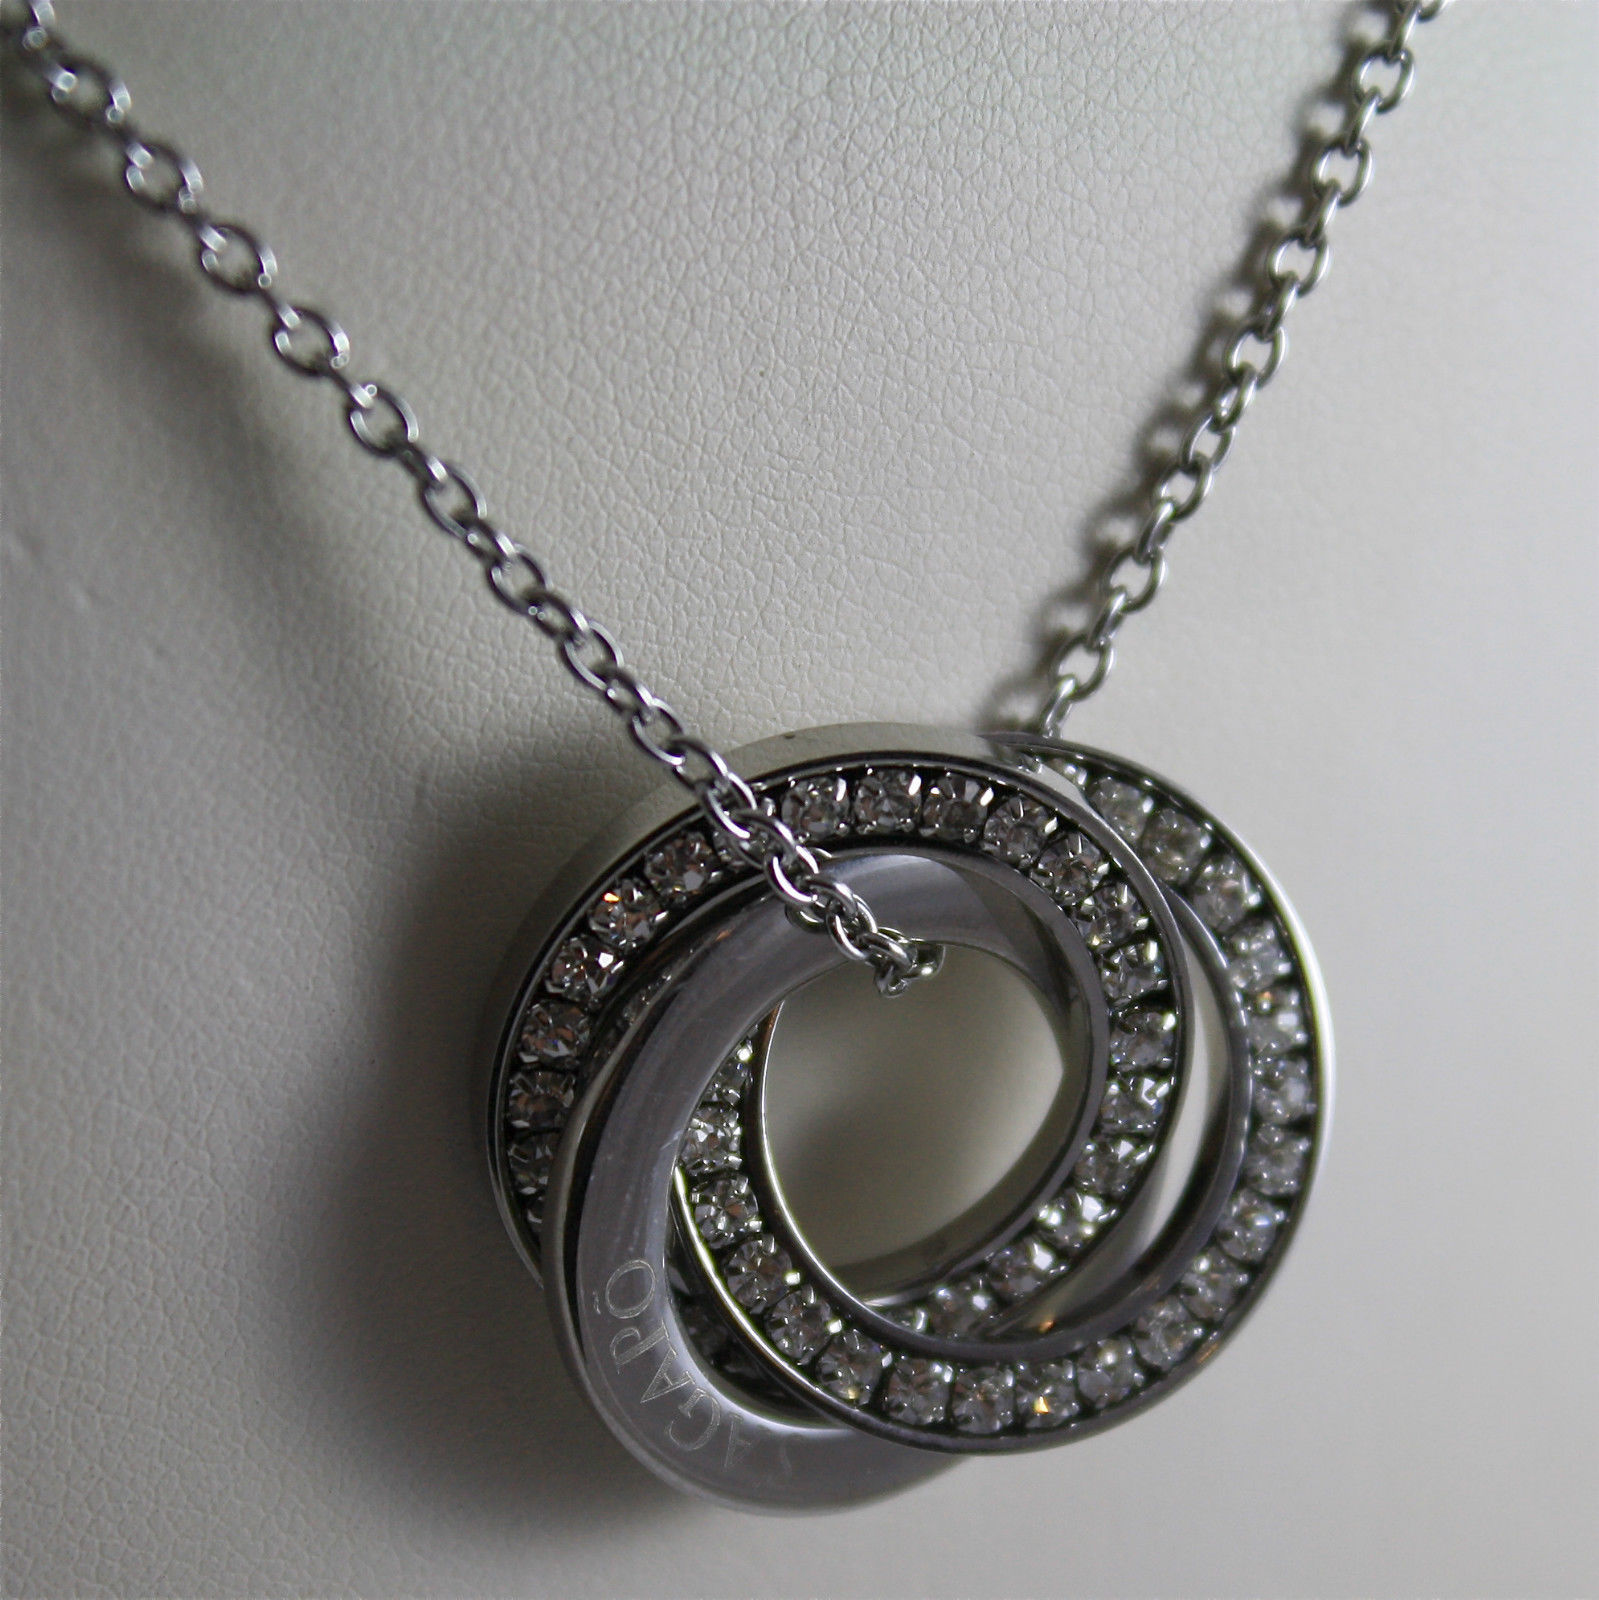 S'AGAPO' NECKLACE, 316L STEEL, TRIPLE CIRCLE, WHITE FACETED CRYSTALS.